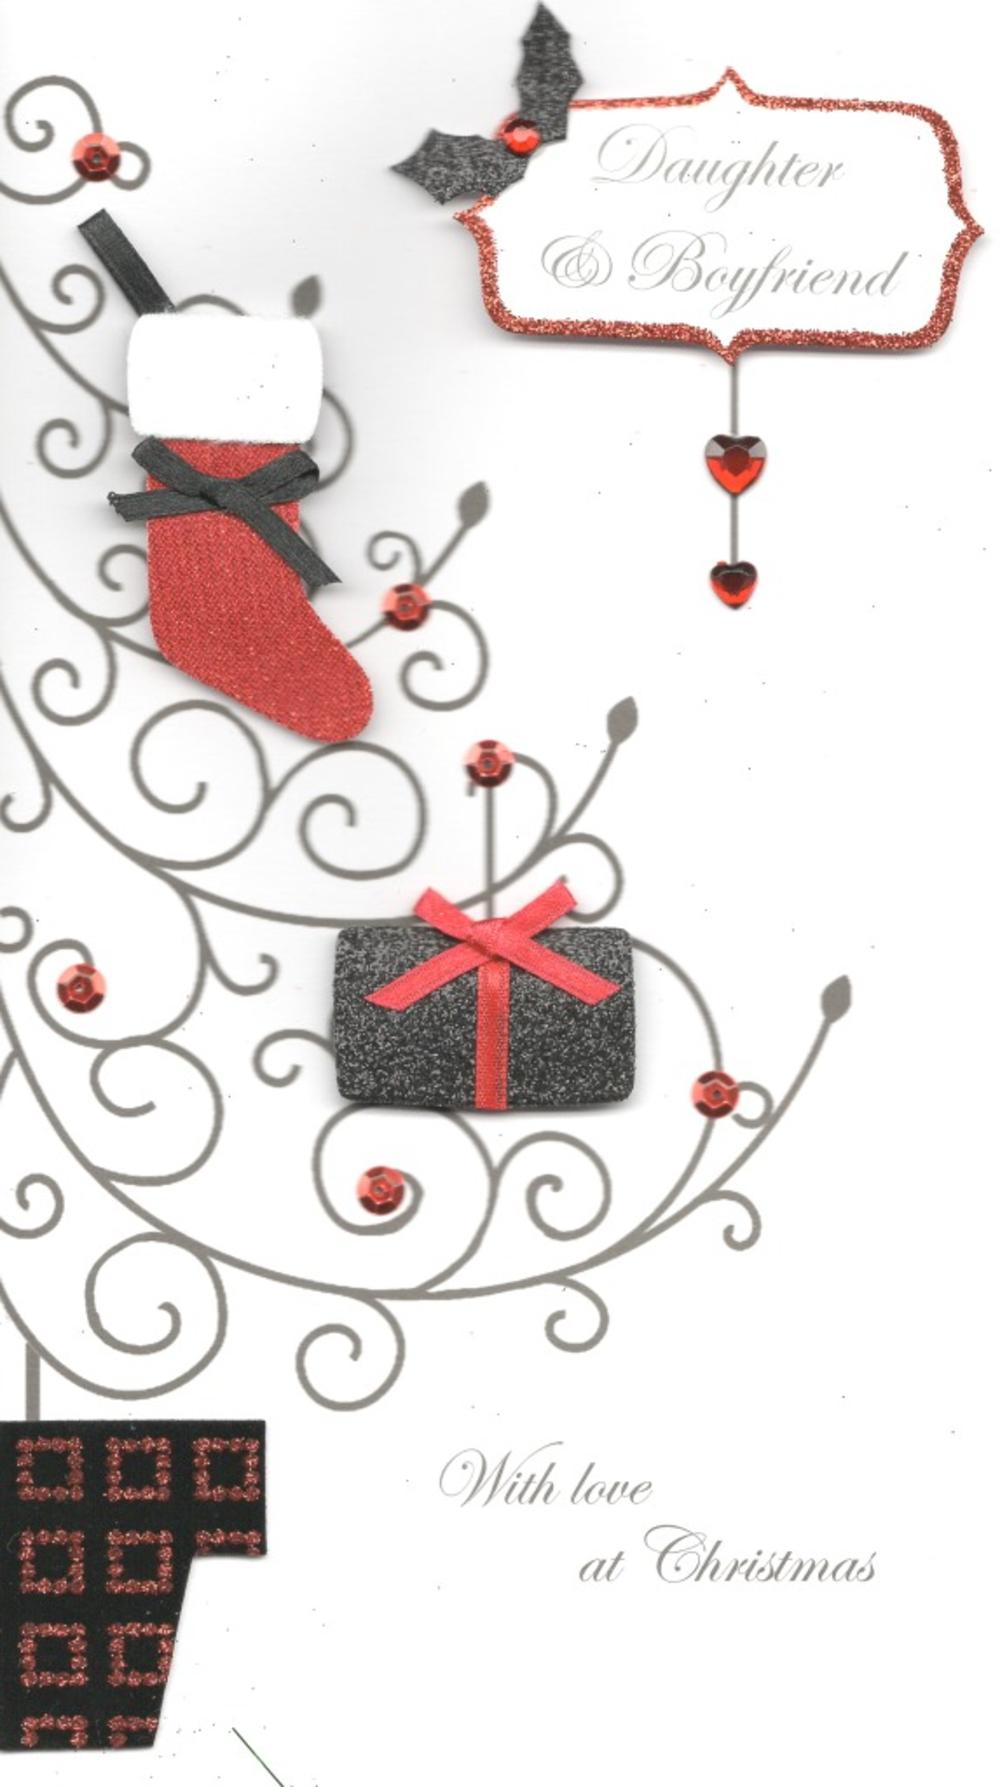 Daughter & Boyfriend Special Luxury Handmade Christmas Card